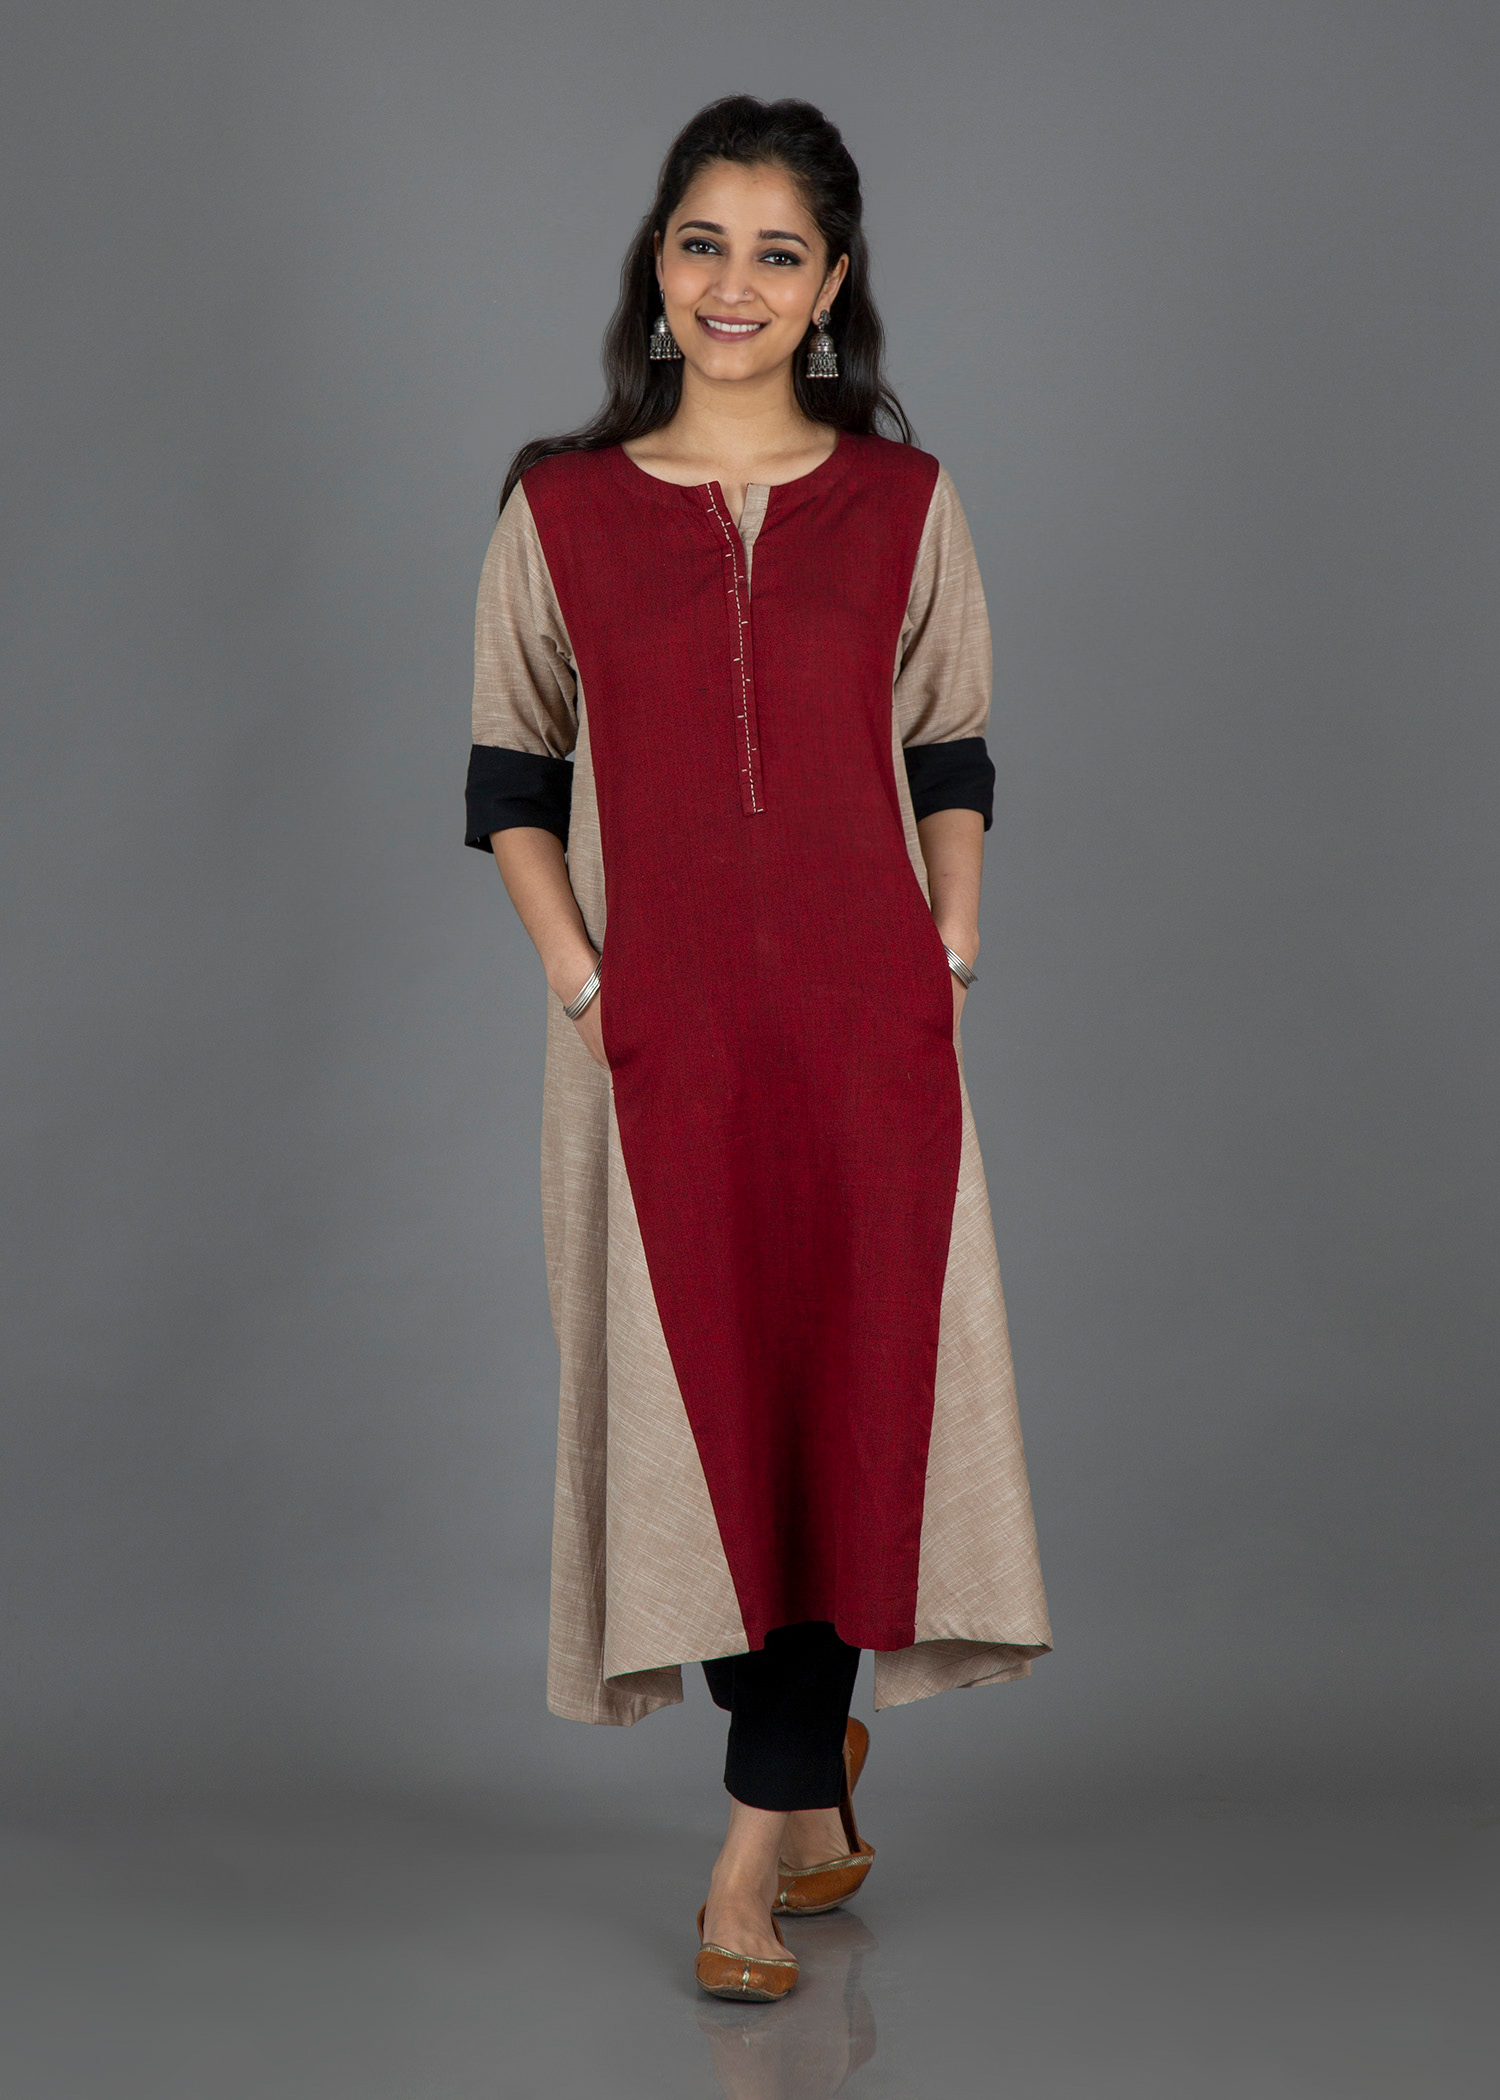 Oat Beige & Burgundy Panel Dress/Kurta